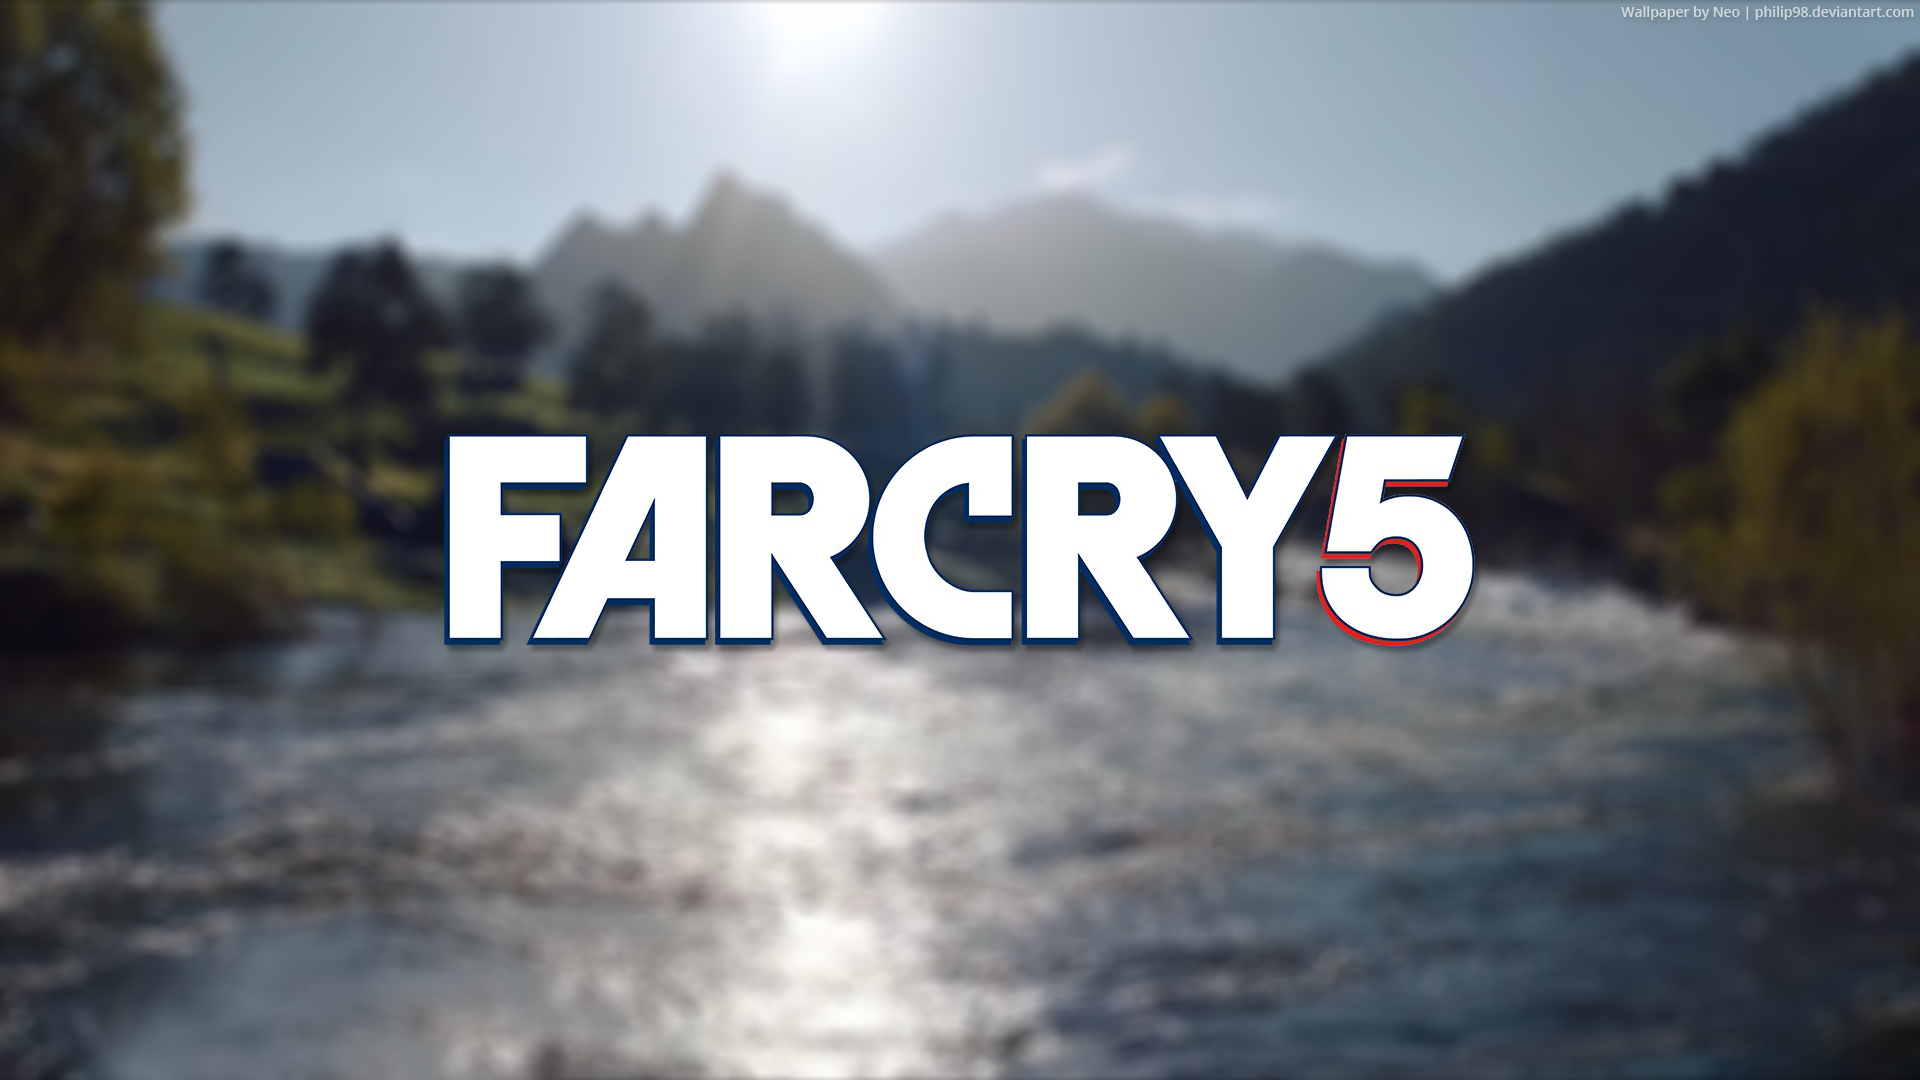 Far Cry 5 Wallpaper 2 By Neo By Philip98 On Deviantart